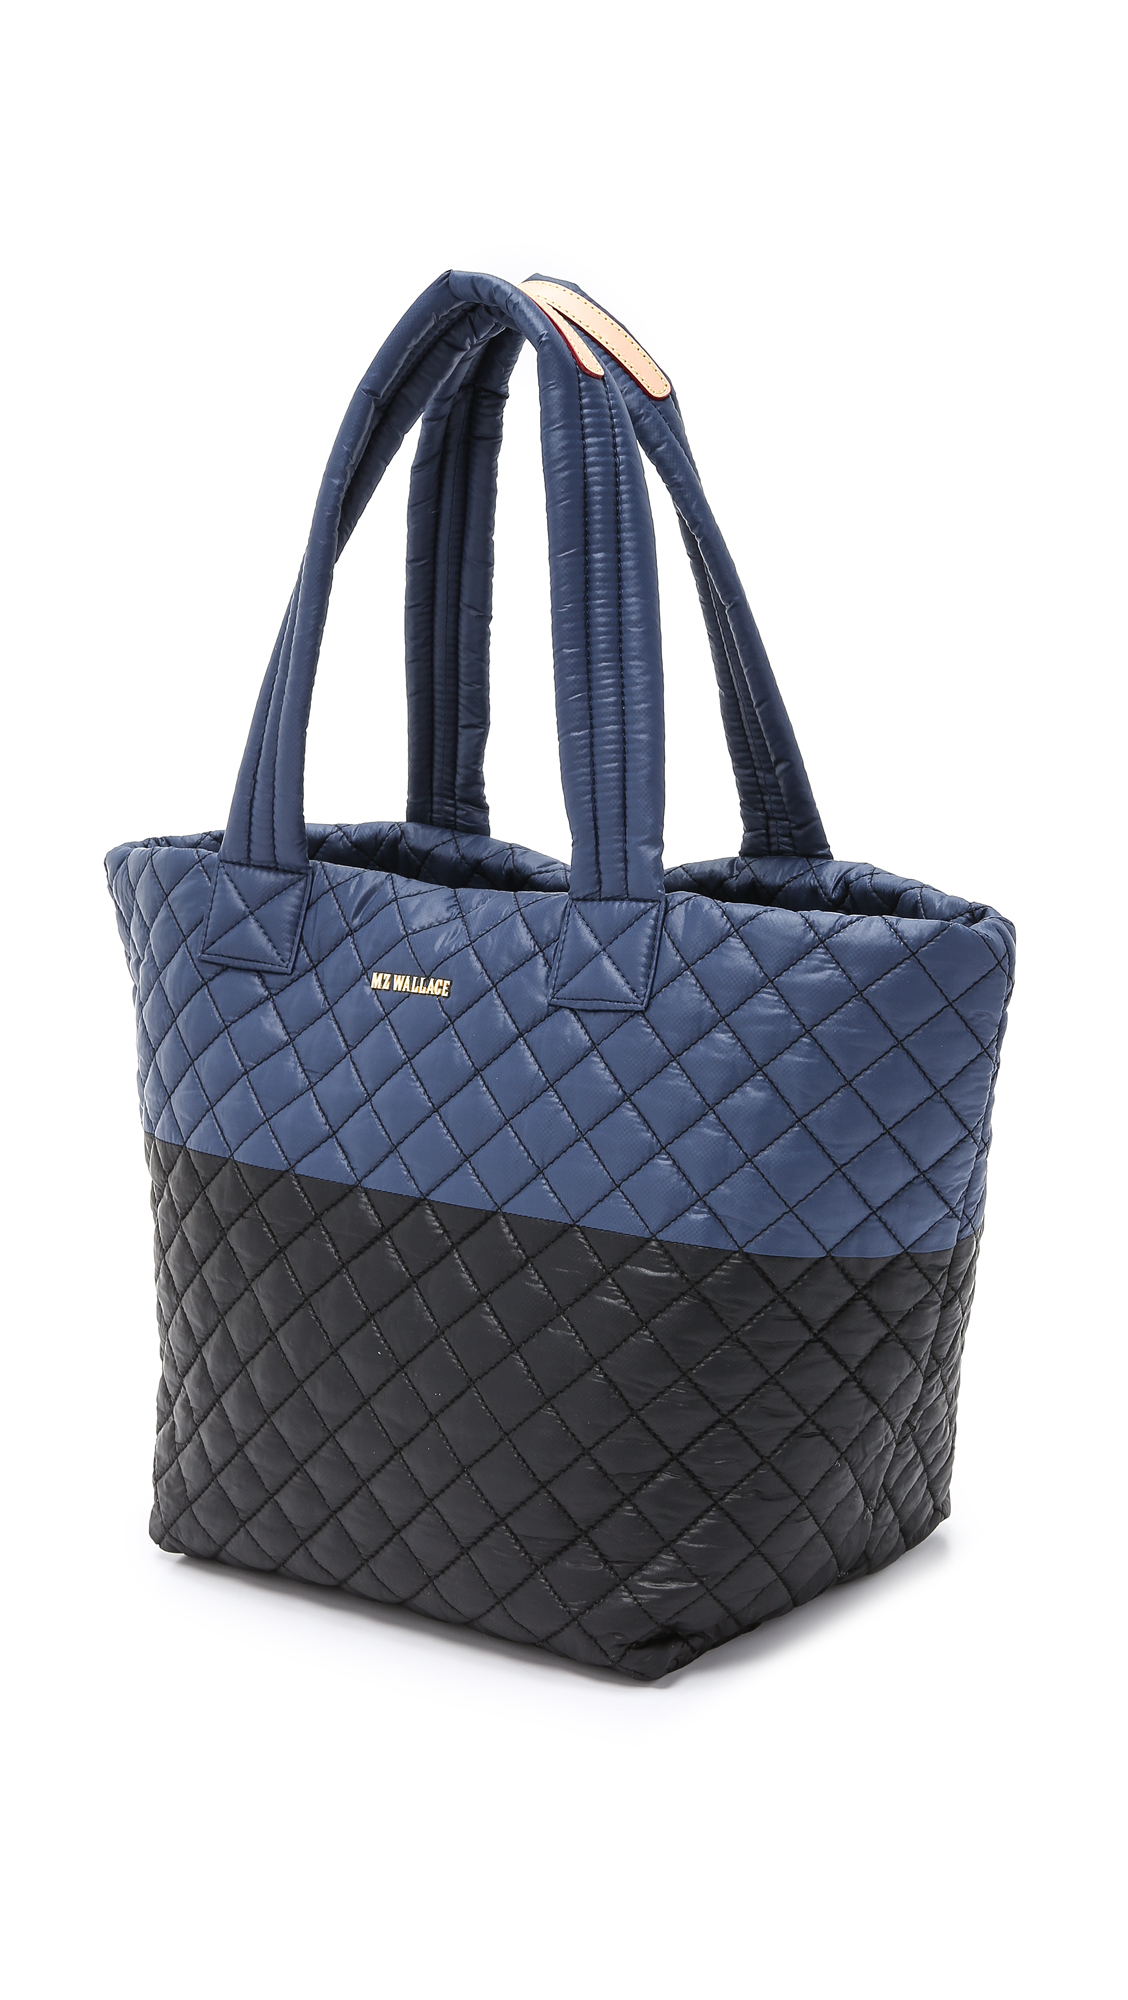 MZ Wallace Medium Metro Tote - Midnight Blue/black